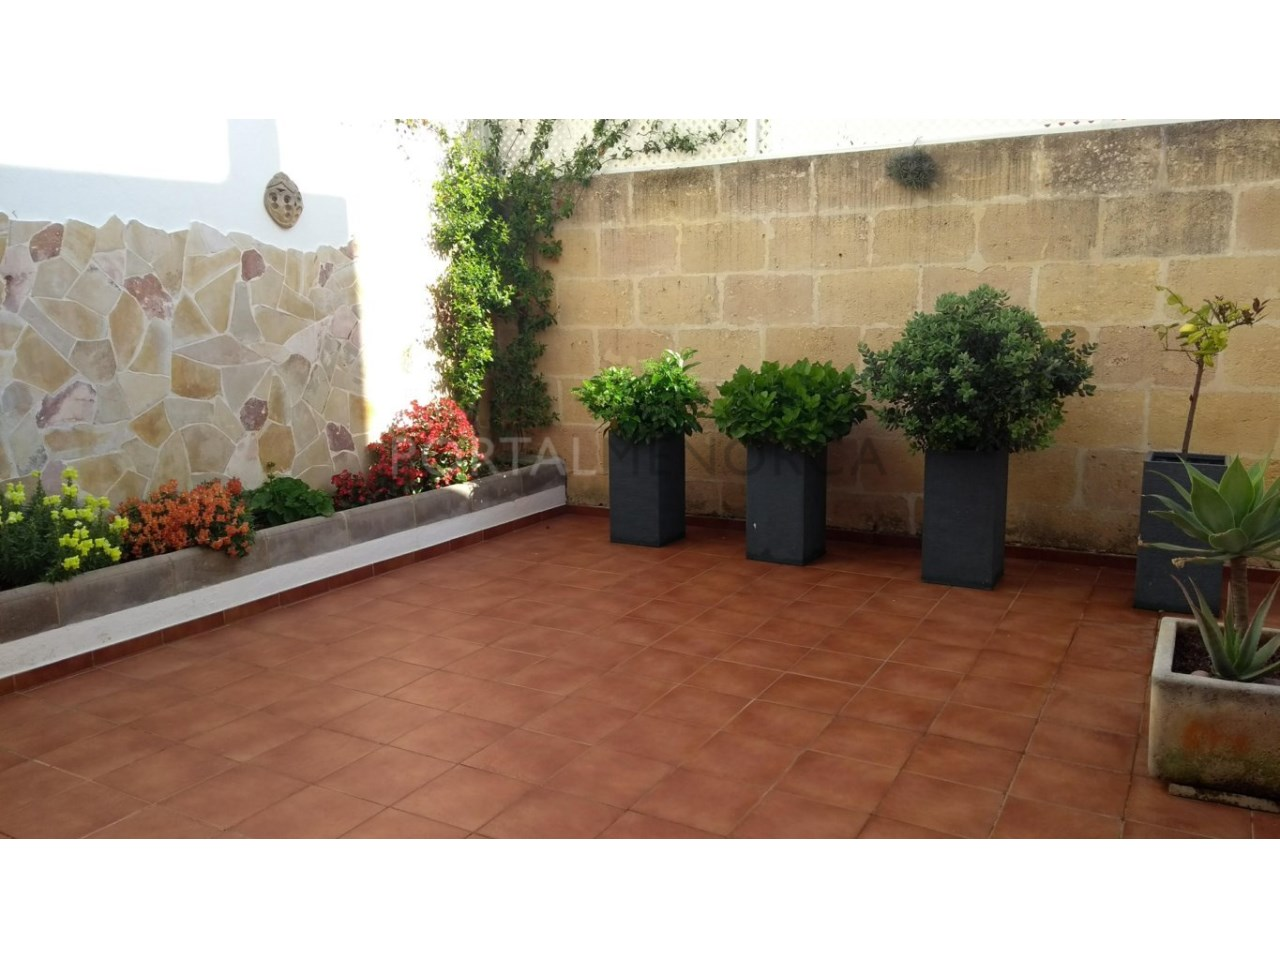 House with patio for sale in Ciutadella-Patio